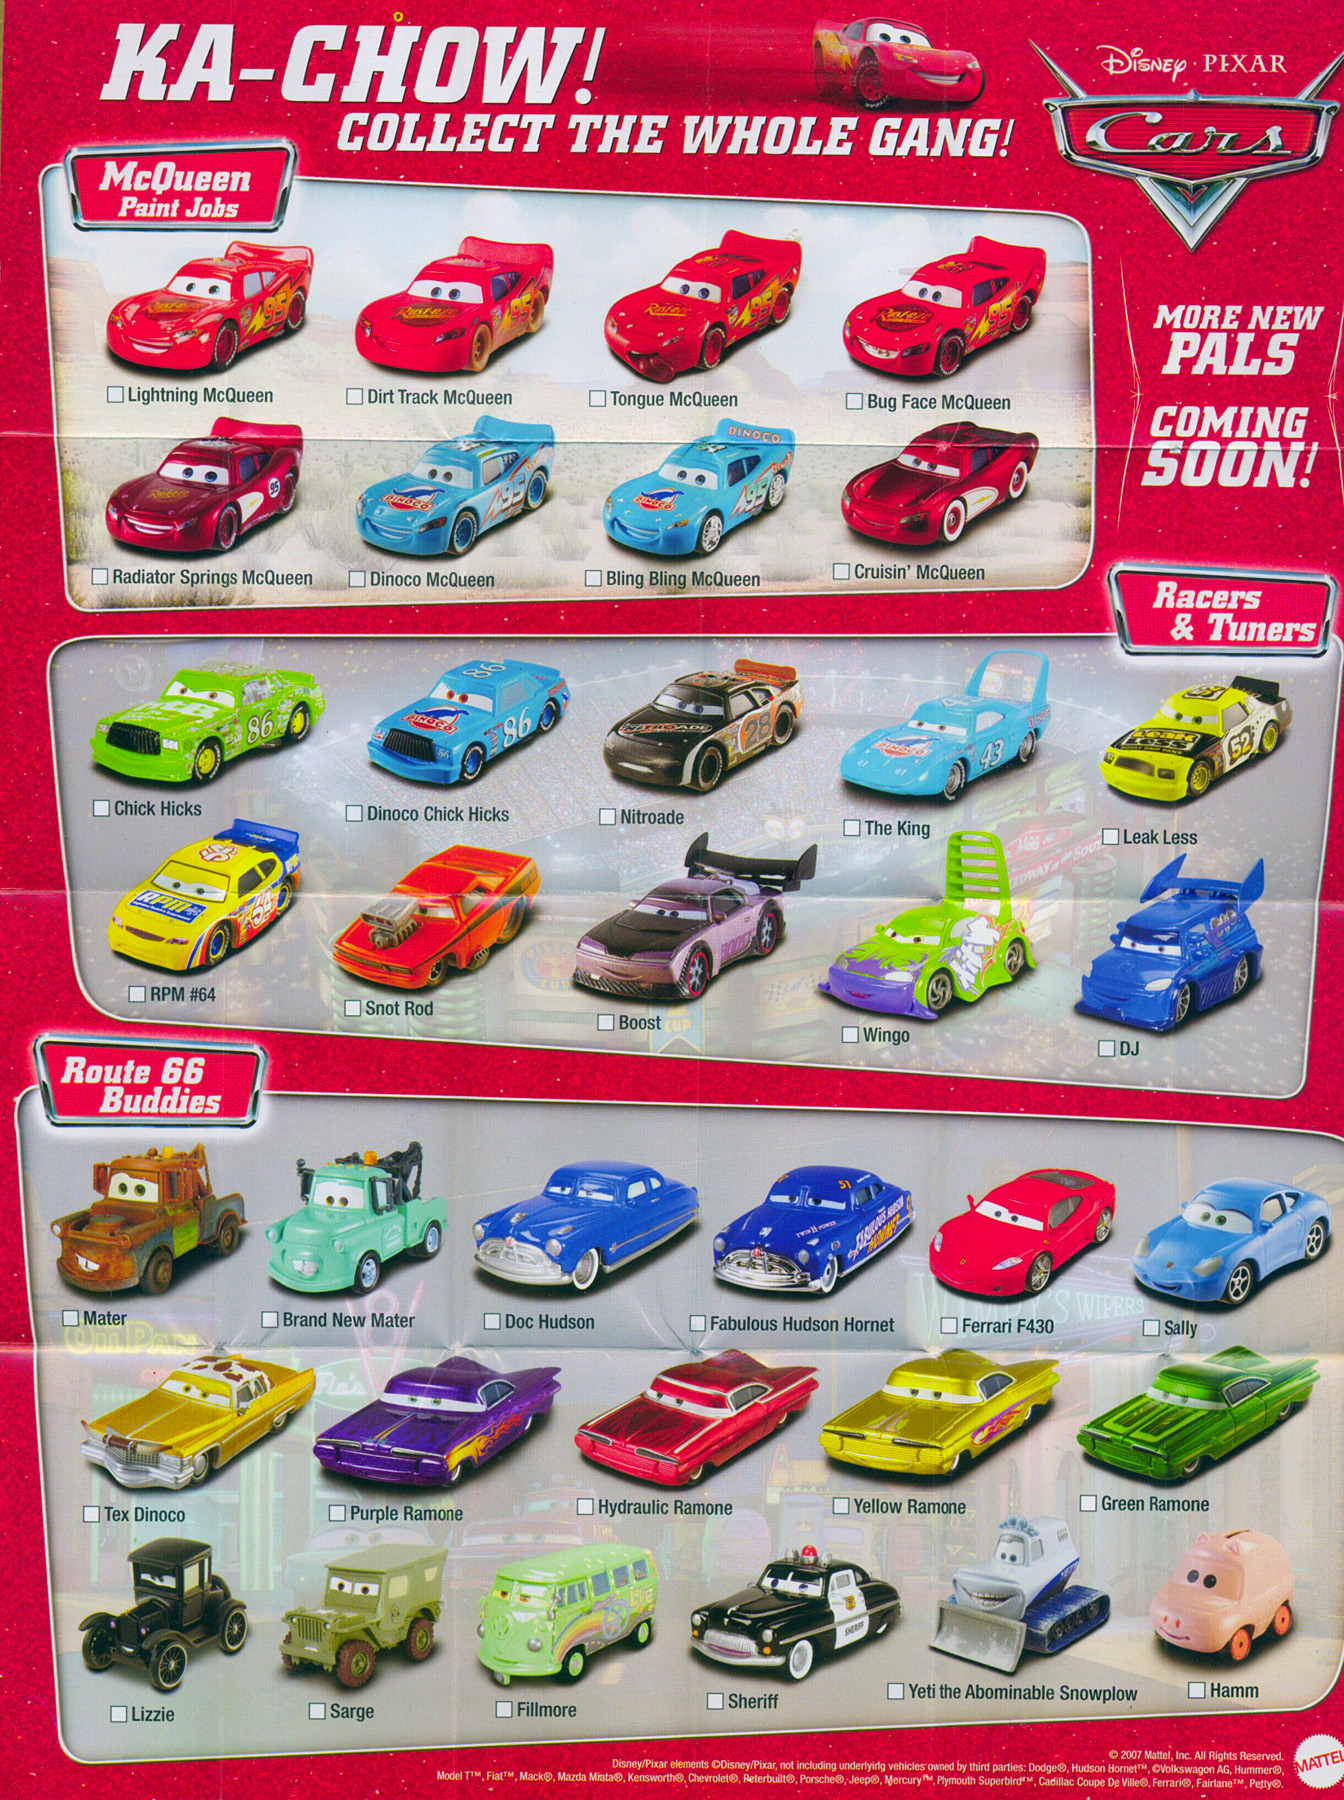 Cars Character Poster Disney Pixar Cars The Toys